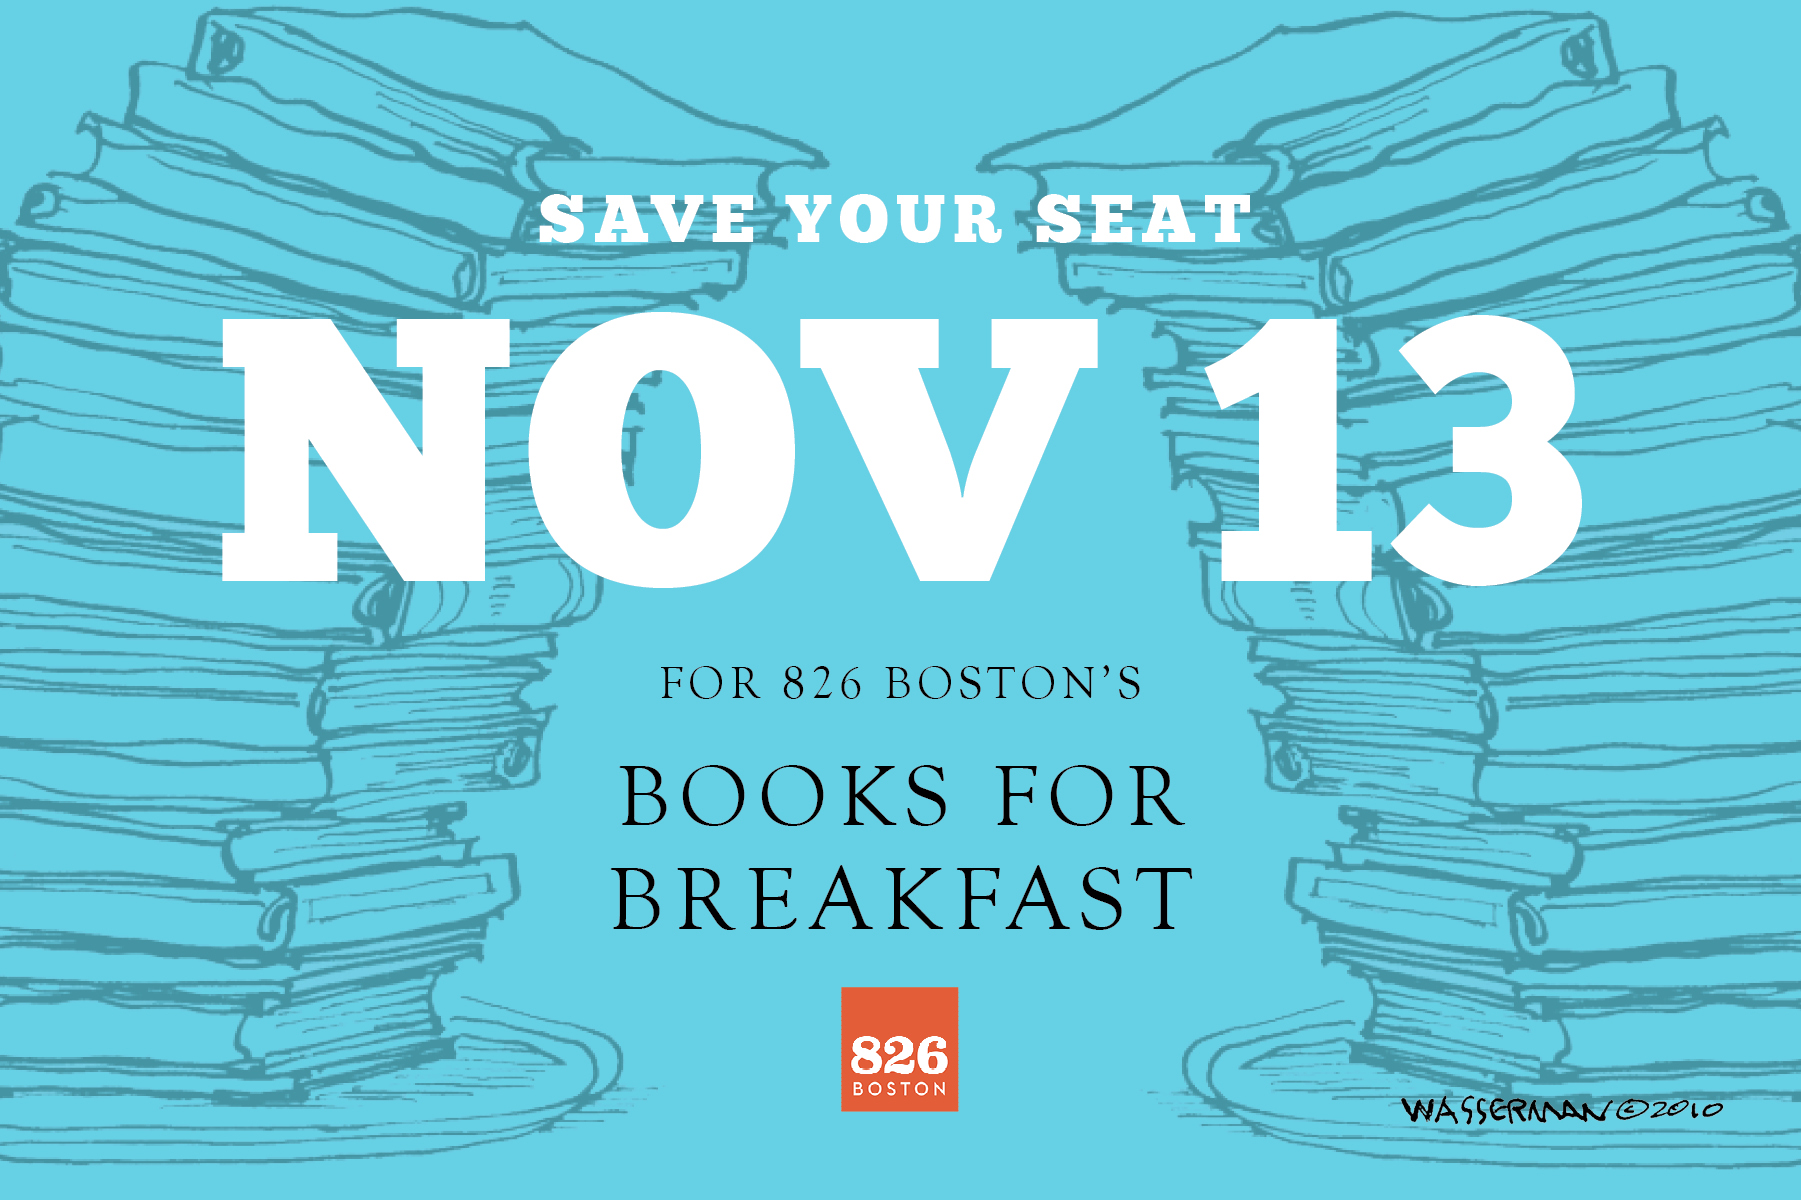 Save your seat for 826 Boston Books For Breakfast on Nov. 13